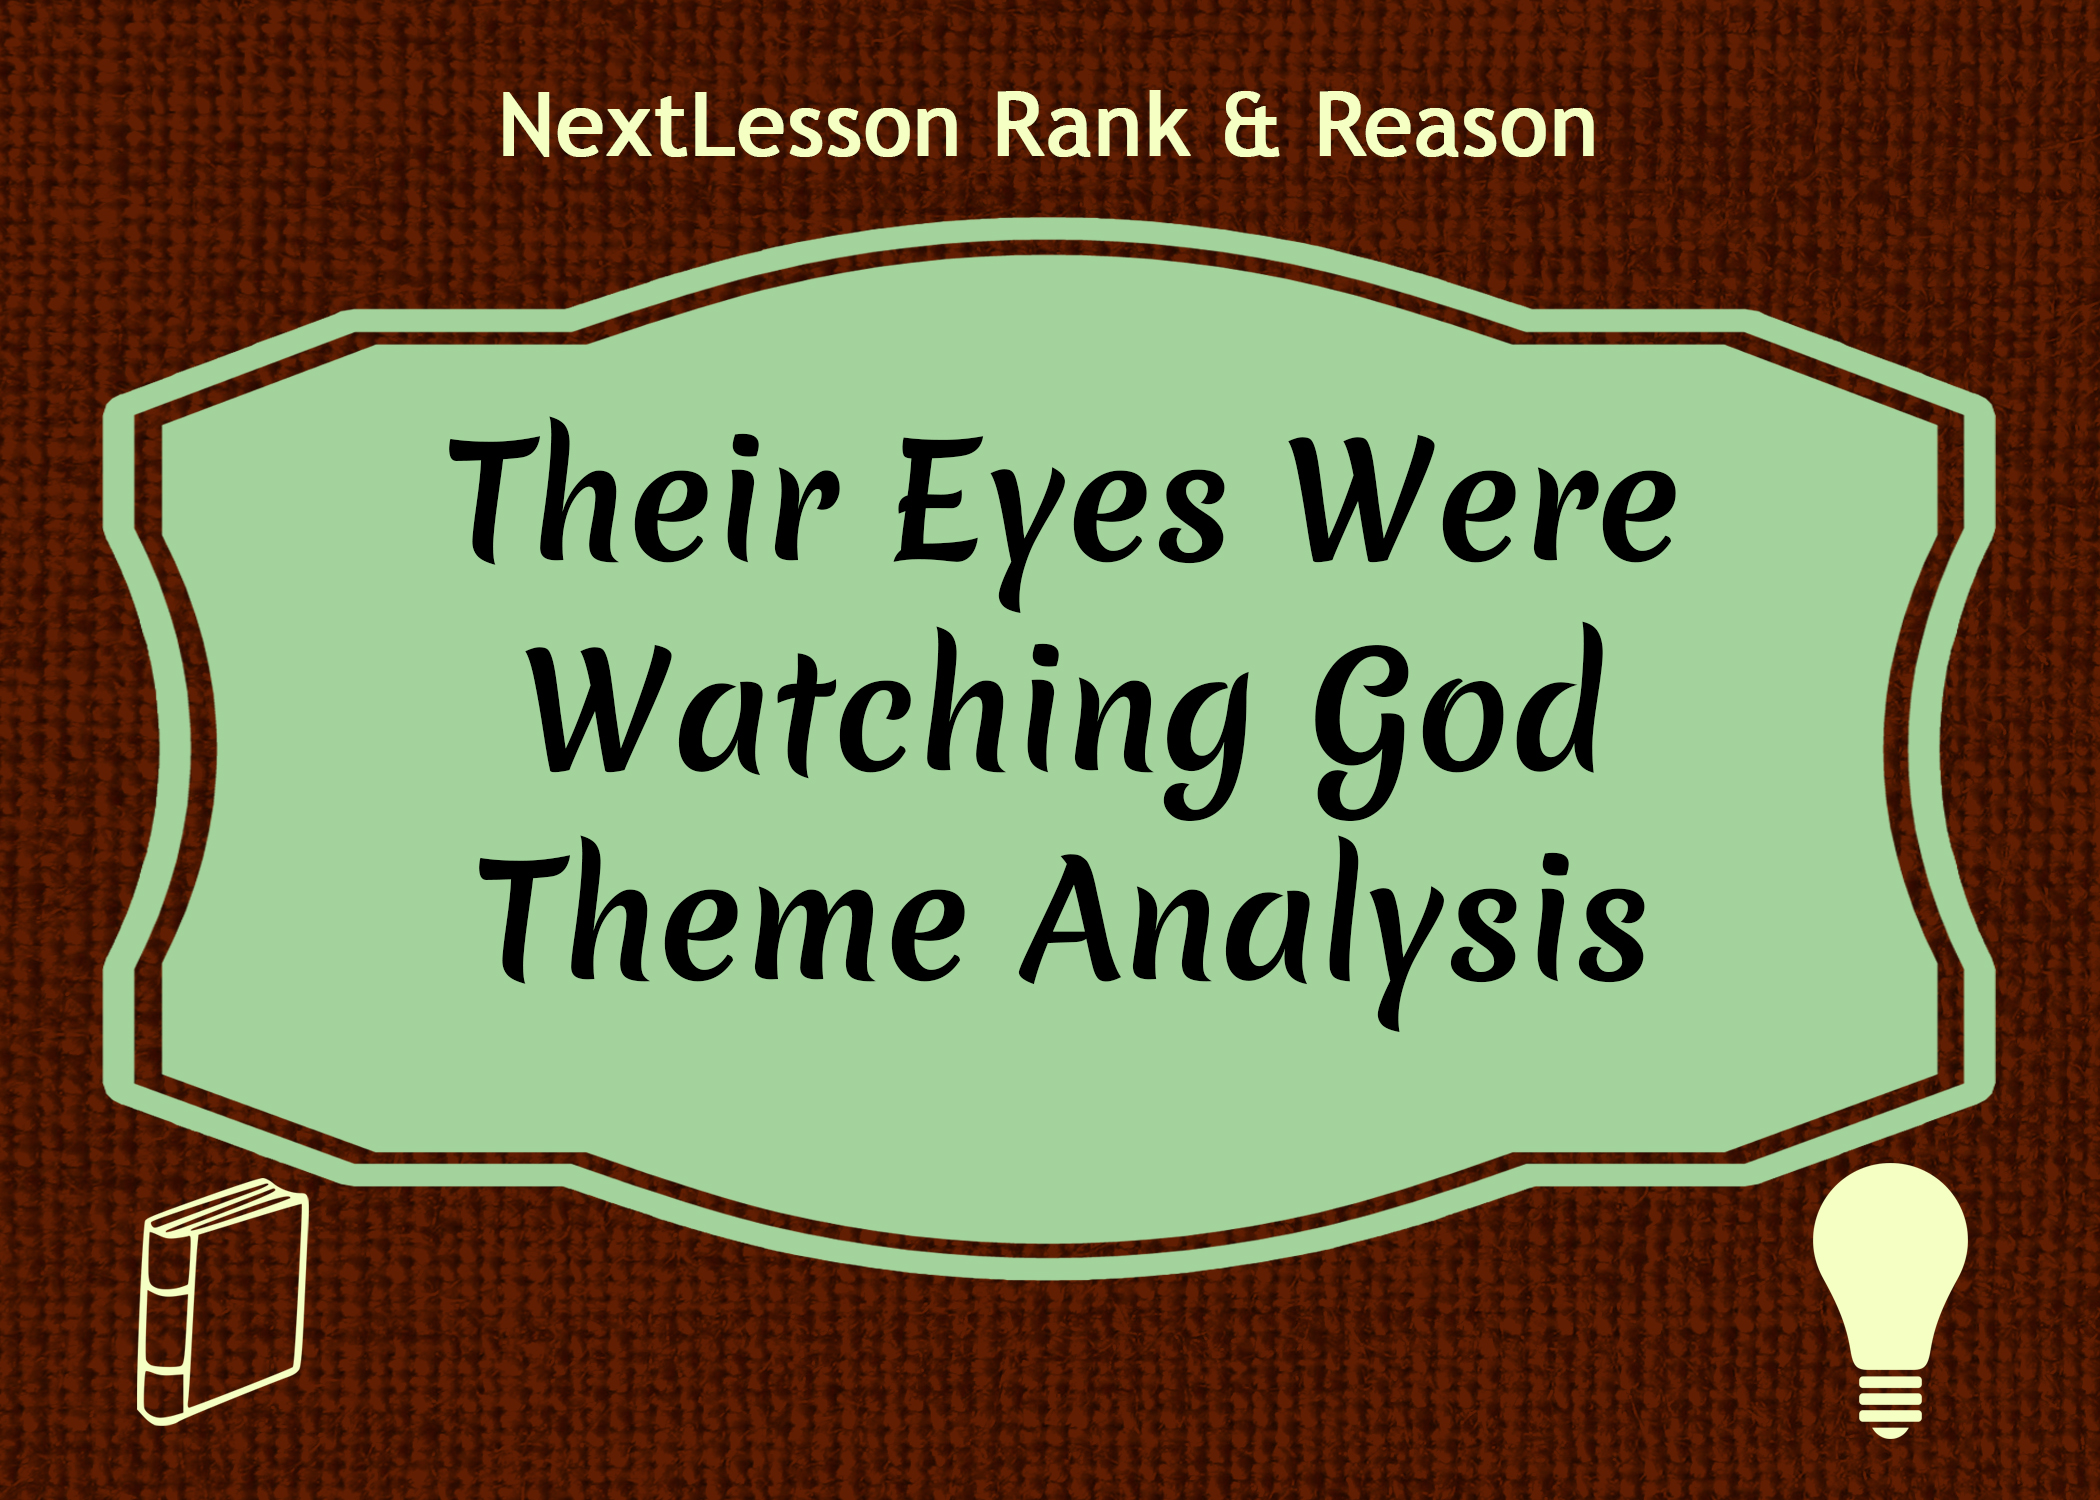 the effects of marriage in the novel their eyes were watching god by zora neale hurston Their eyes were watching god lesson plan & activities include summaries, janie & characters, analysis, setting, motifs, symbols, & themes in zora neale hurston books.